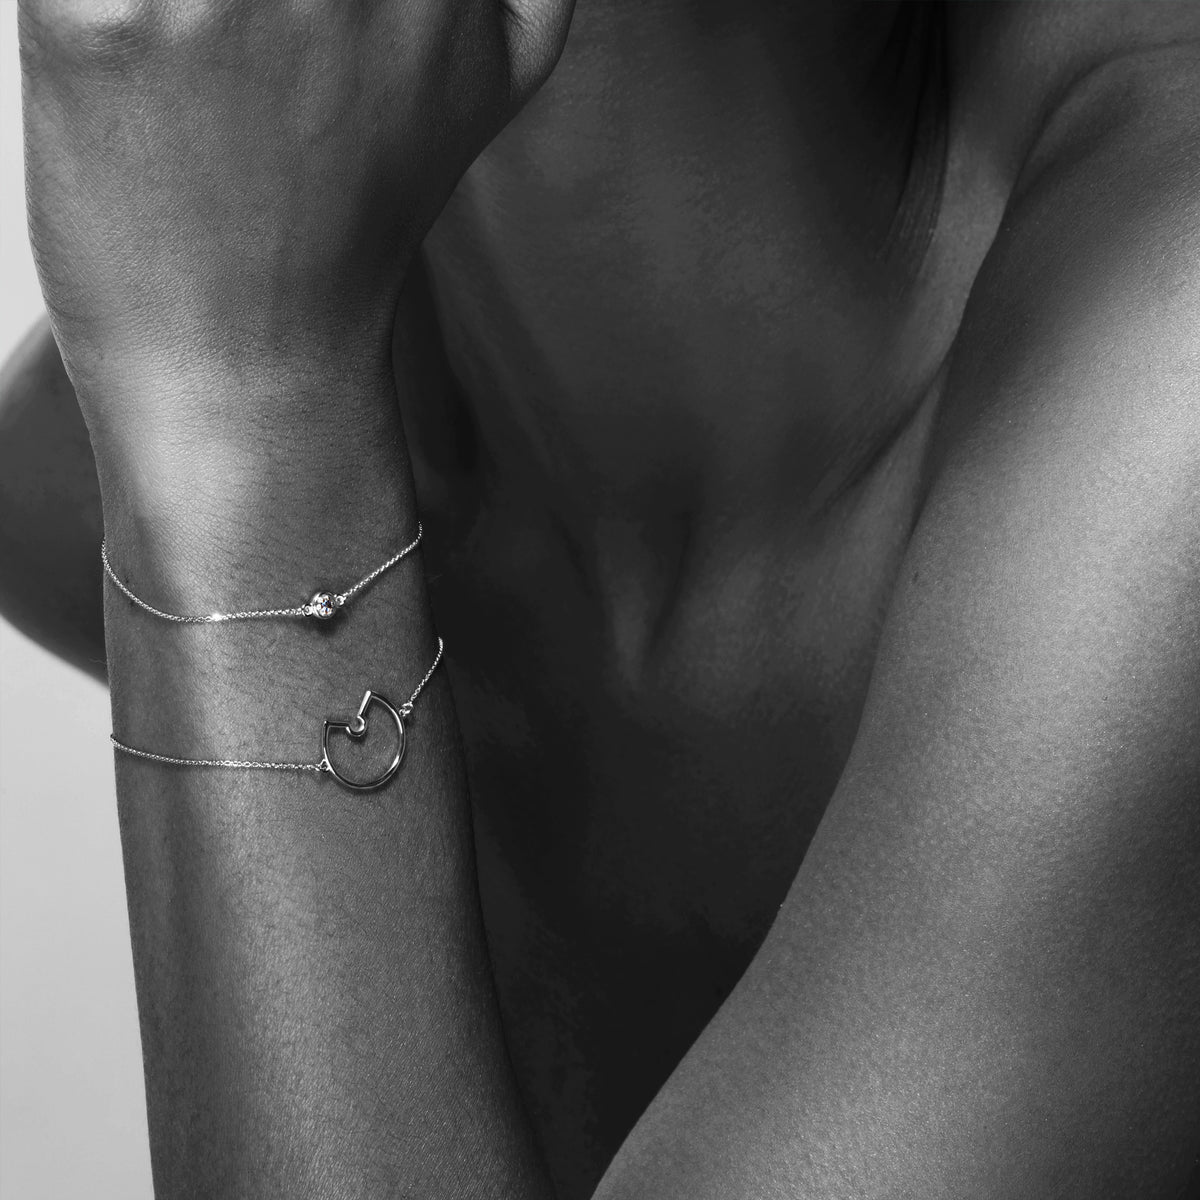 Luke Rose Jewellery Silver Bracelets